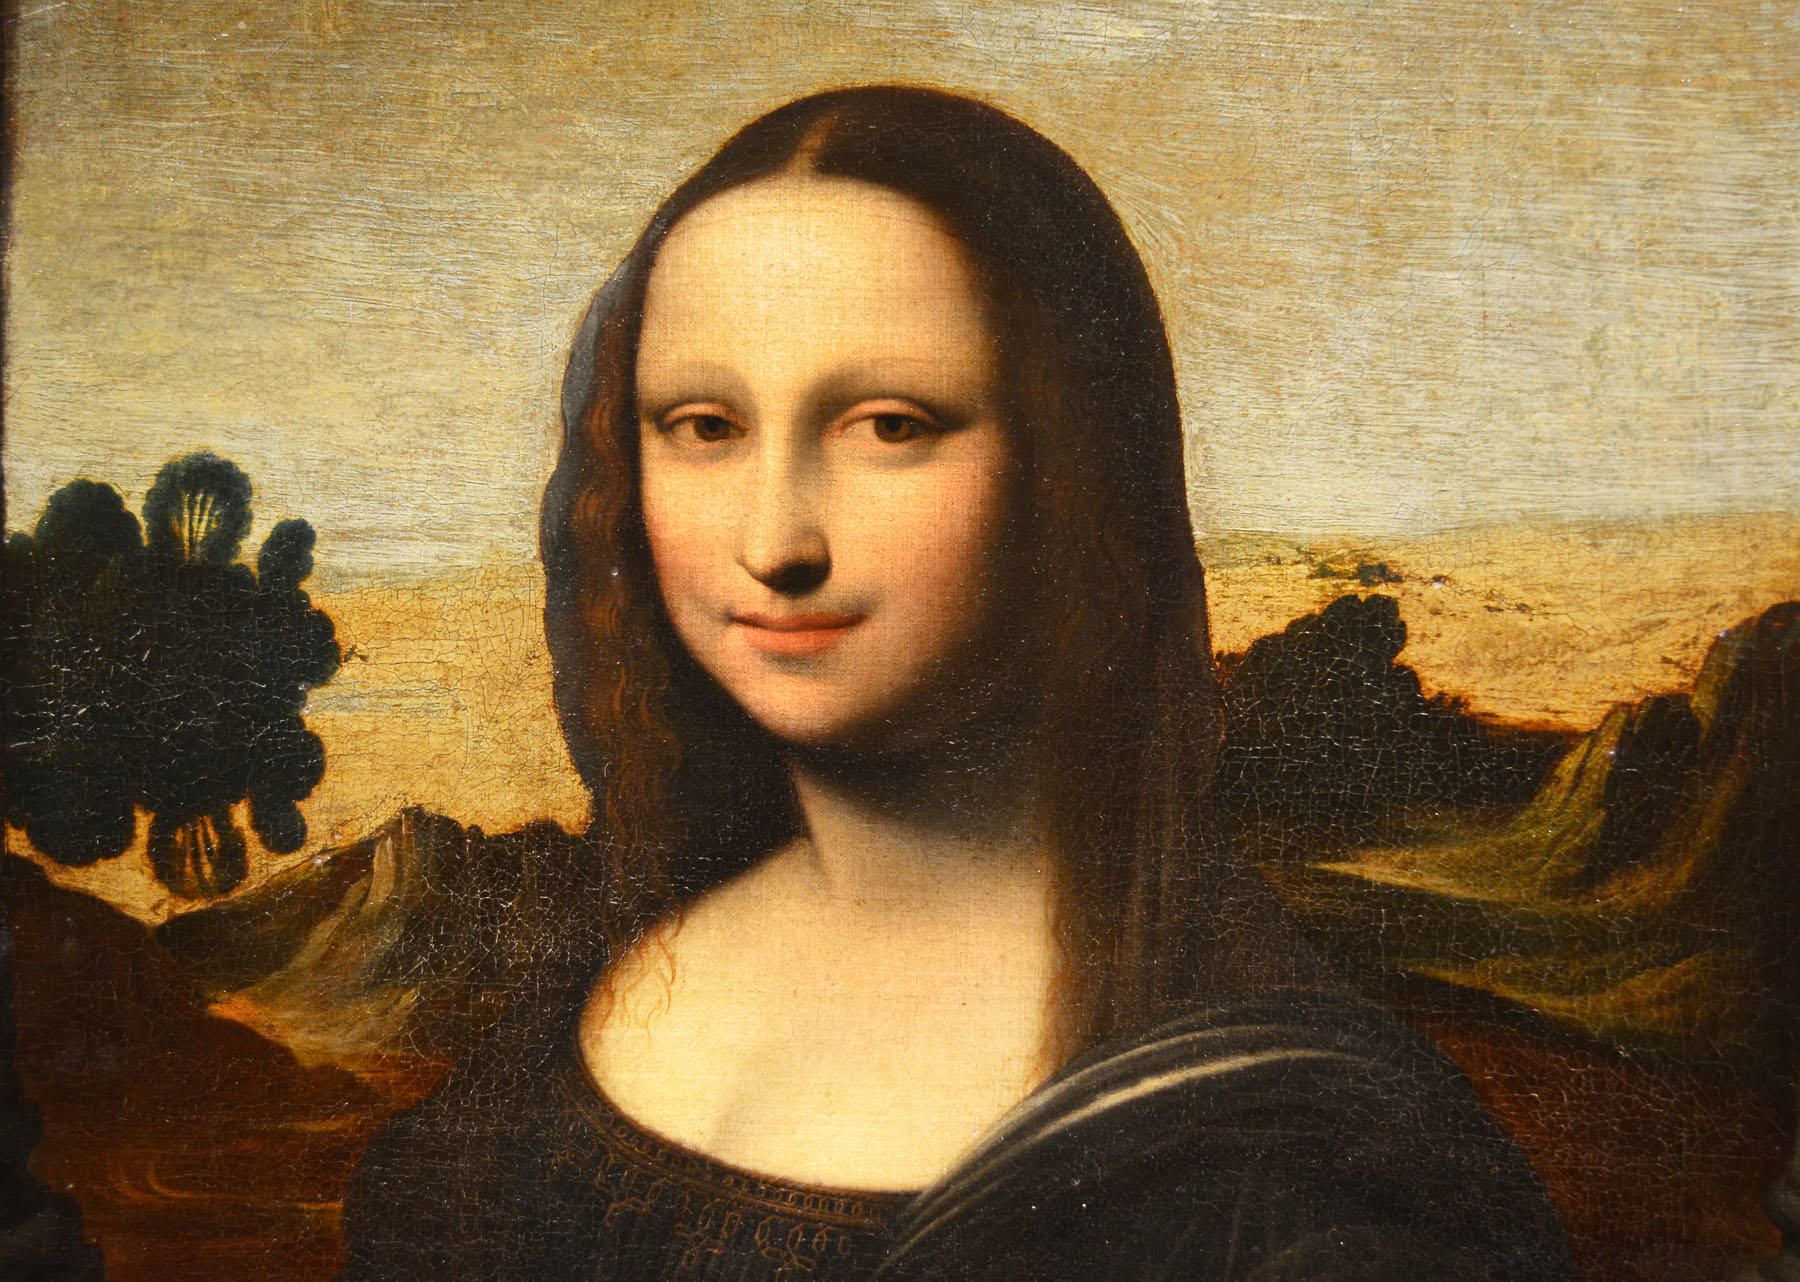 French Scientist Claims There Is A Hidden Image Underneath The Mona Lisa monalisa5